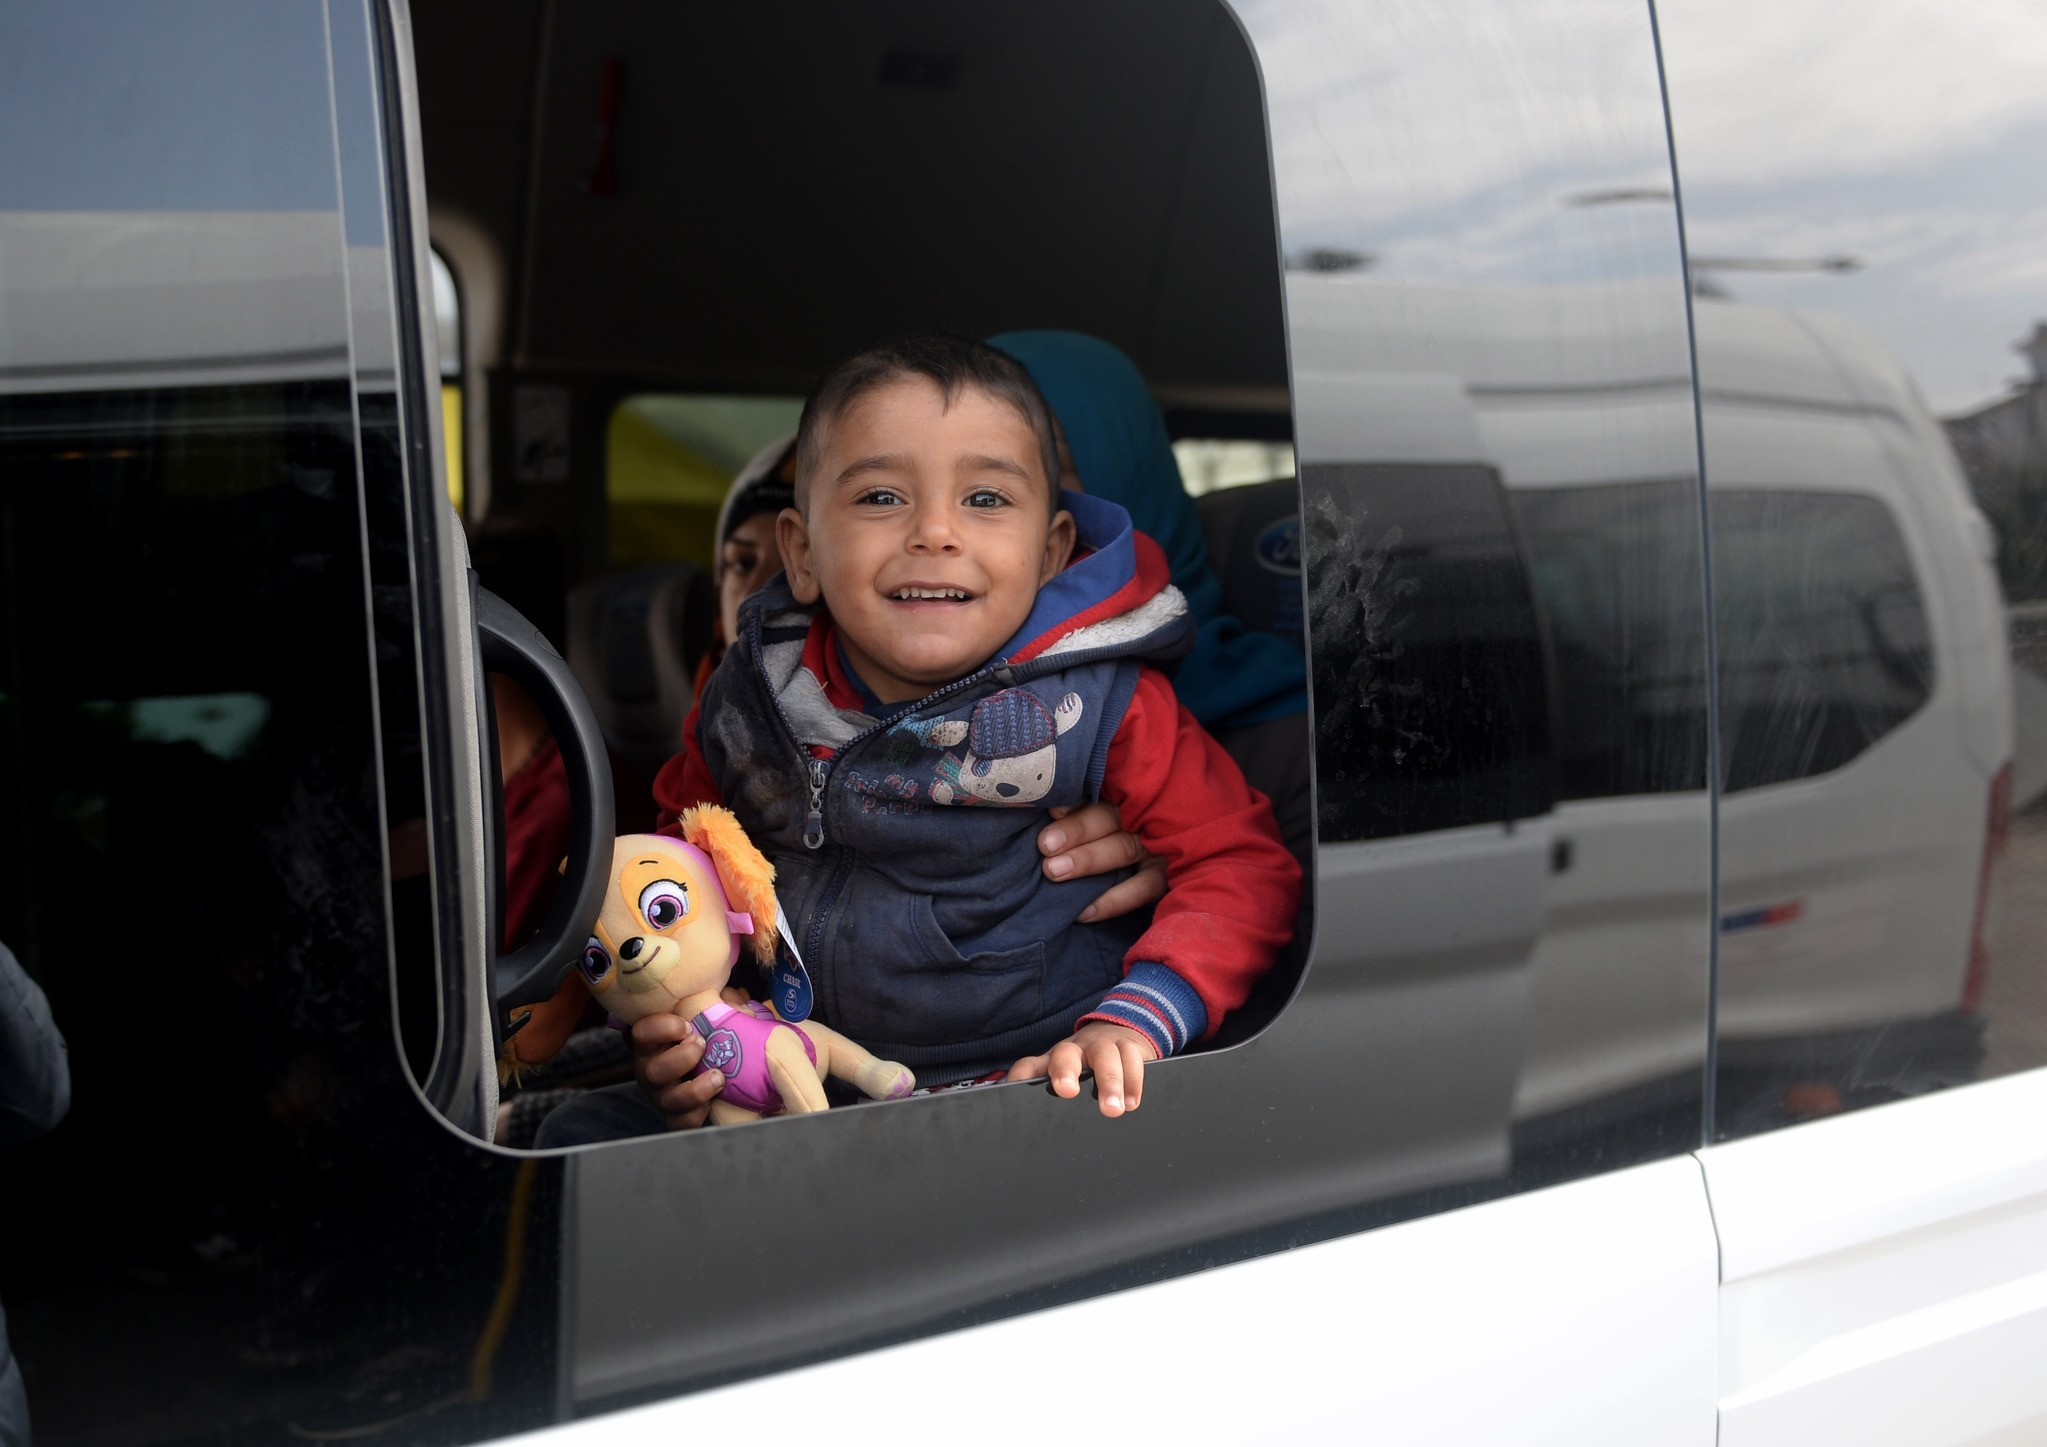 A Syrian boy stares out the window of a minibus carrying refugees to Syria at the u00d6ncu00fcpu0131nar border crossing.